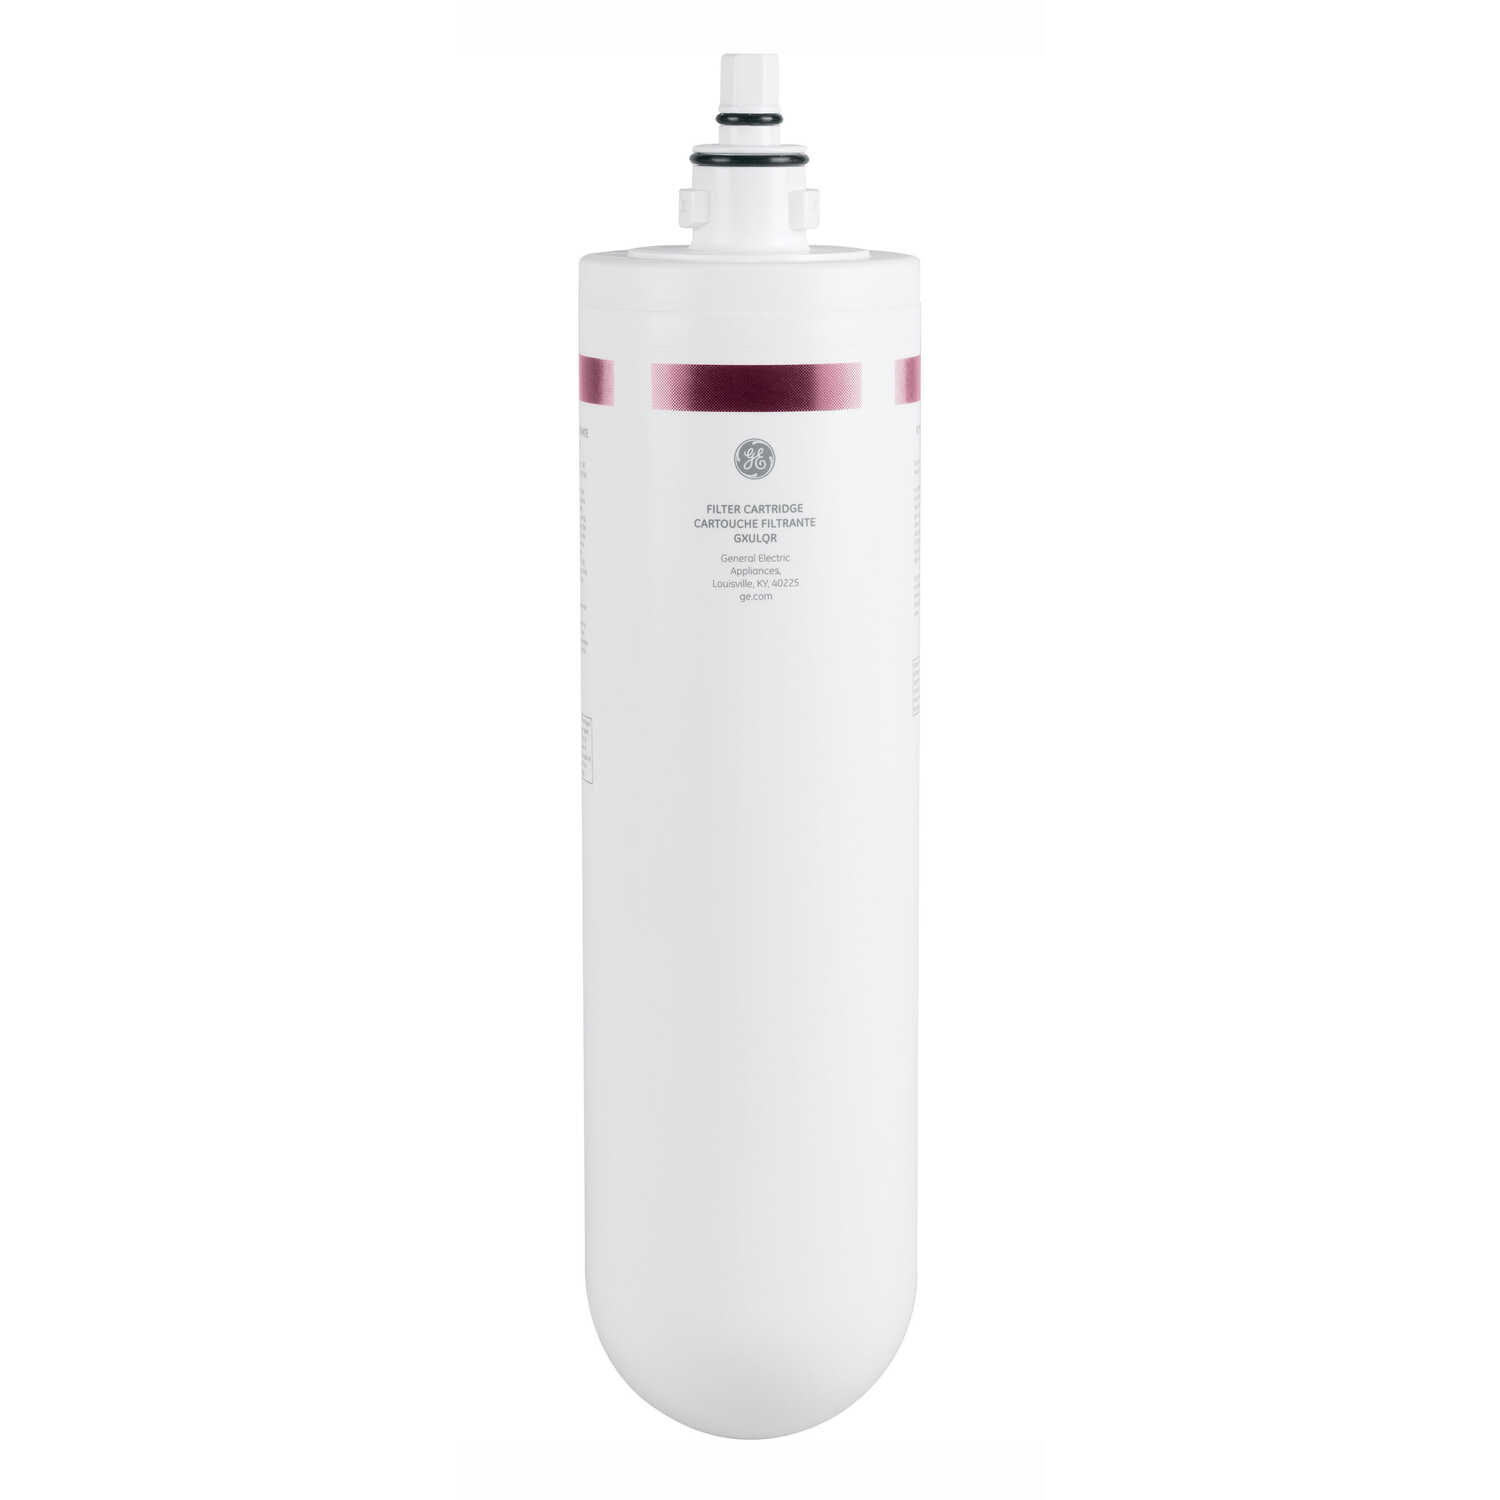 GE Appliances  Full-Flow  Replacement Water Filter  2000 gal.